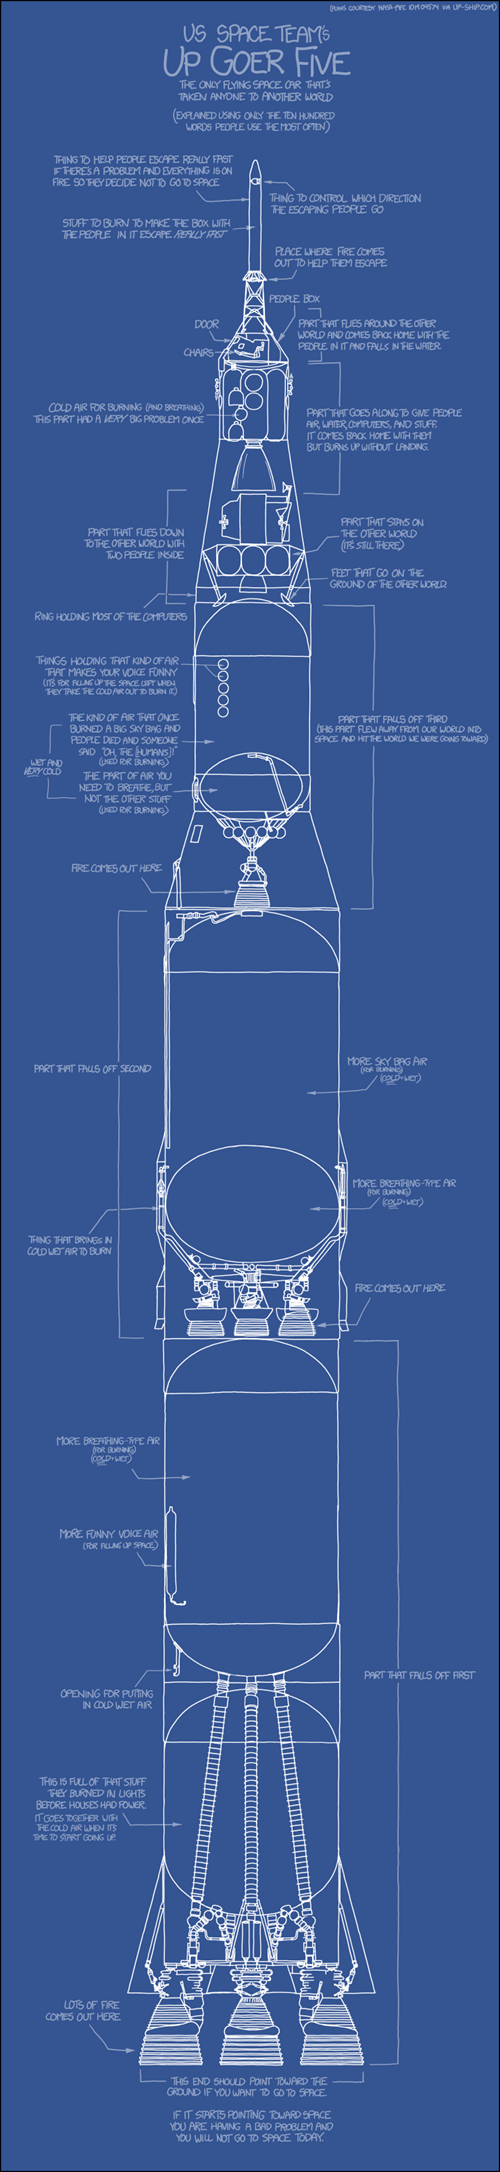 spaceships,simplified,rockets,xkcd,space